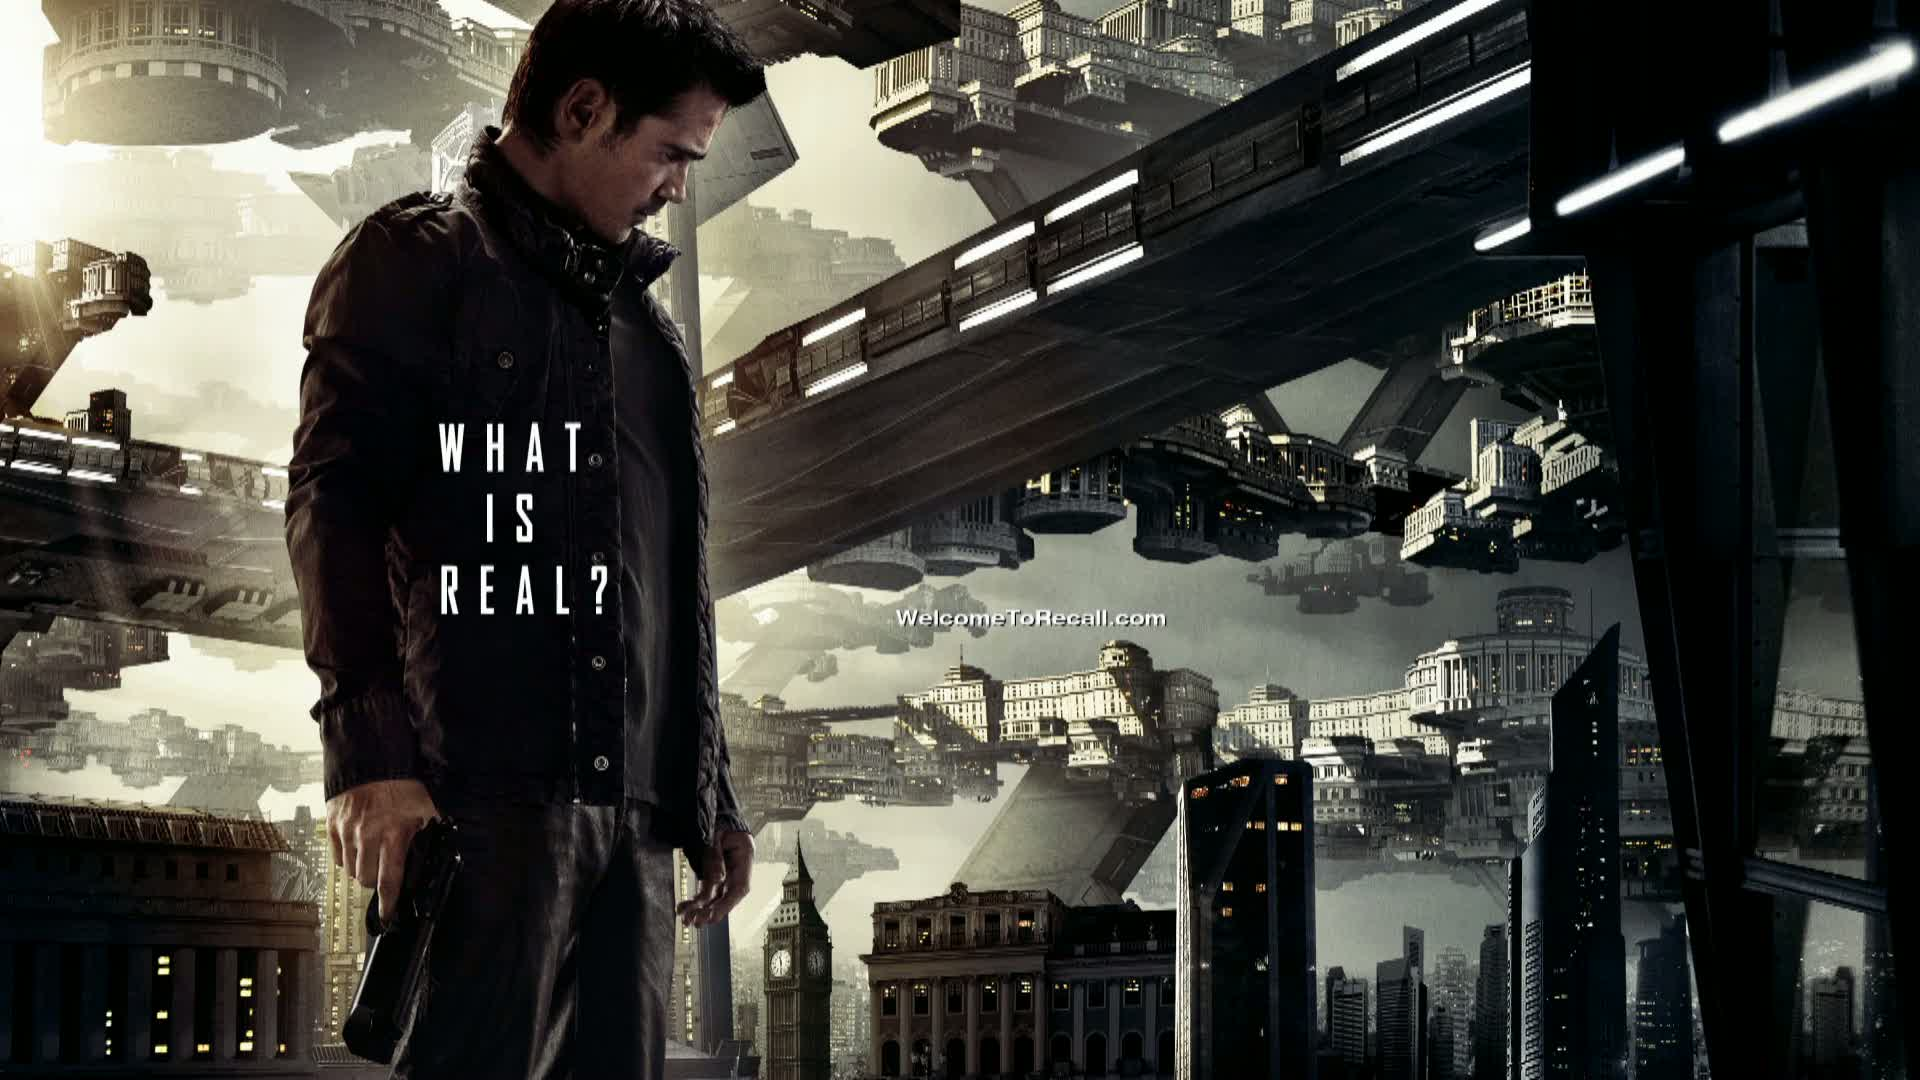 Total Recall Poster - Colin Farrell - Jessica Biel &amp; Kate Beckinsale - Total Recall (2012) Movie Review!